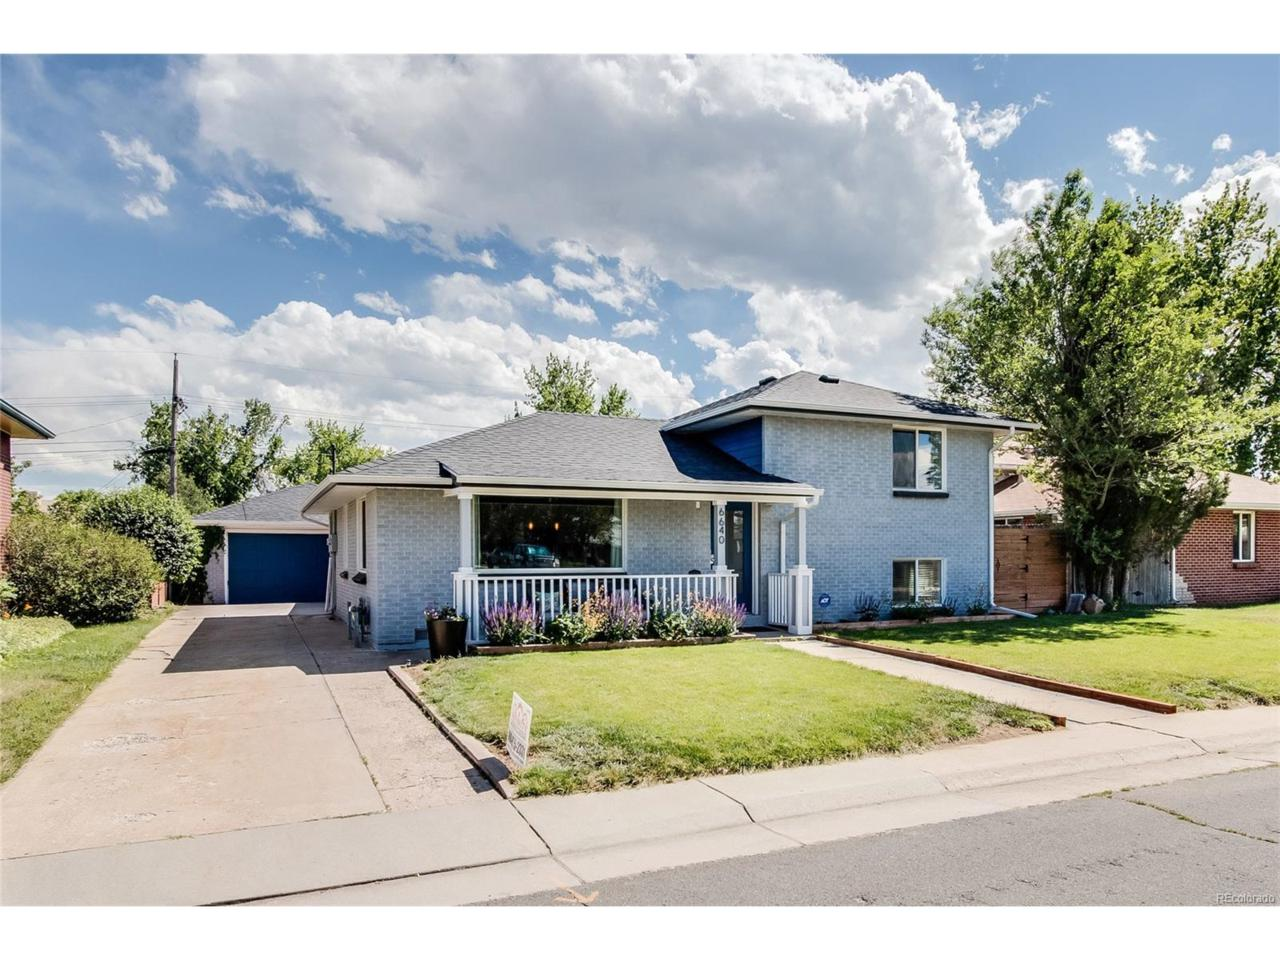 6640 W 54th Place, Arvada, CO 80002 (MLS #7496422) :: 8z Real Estate